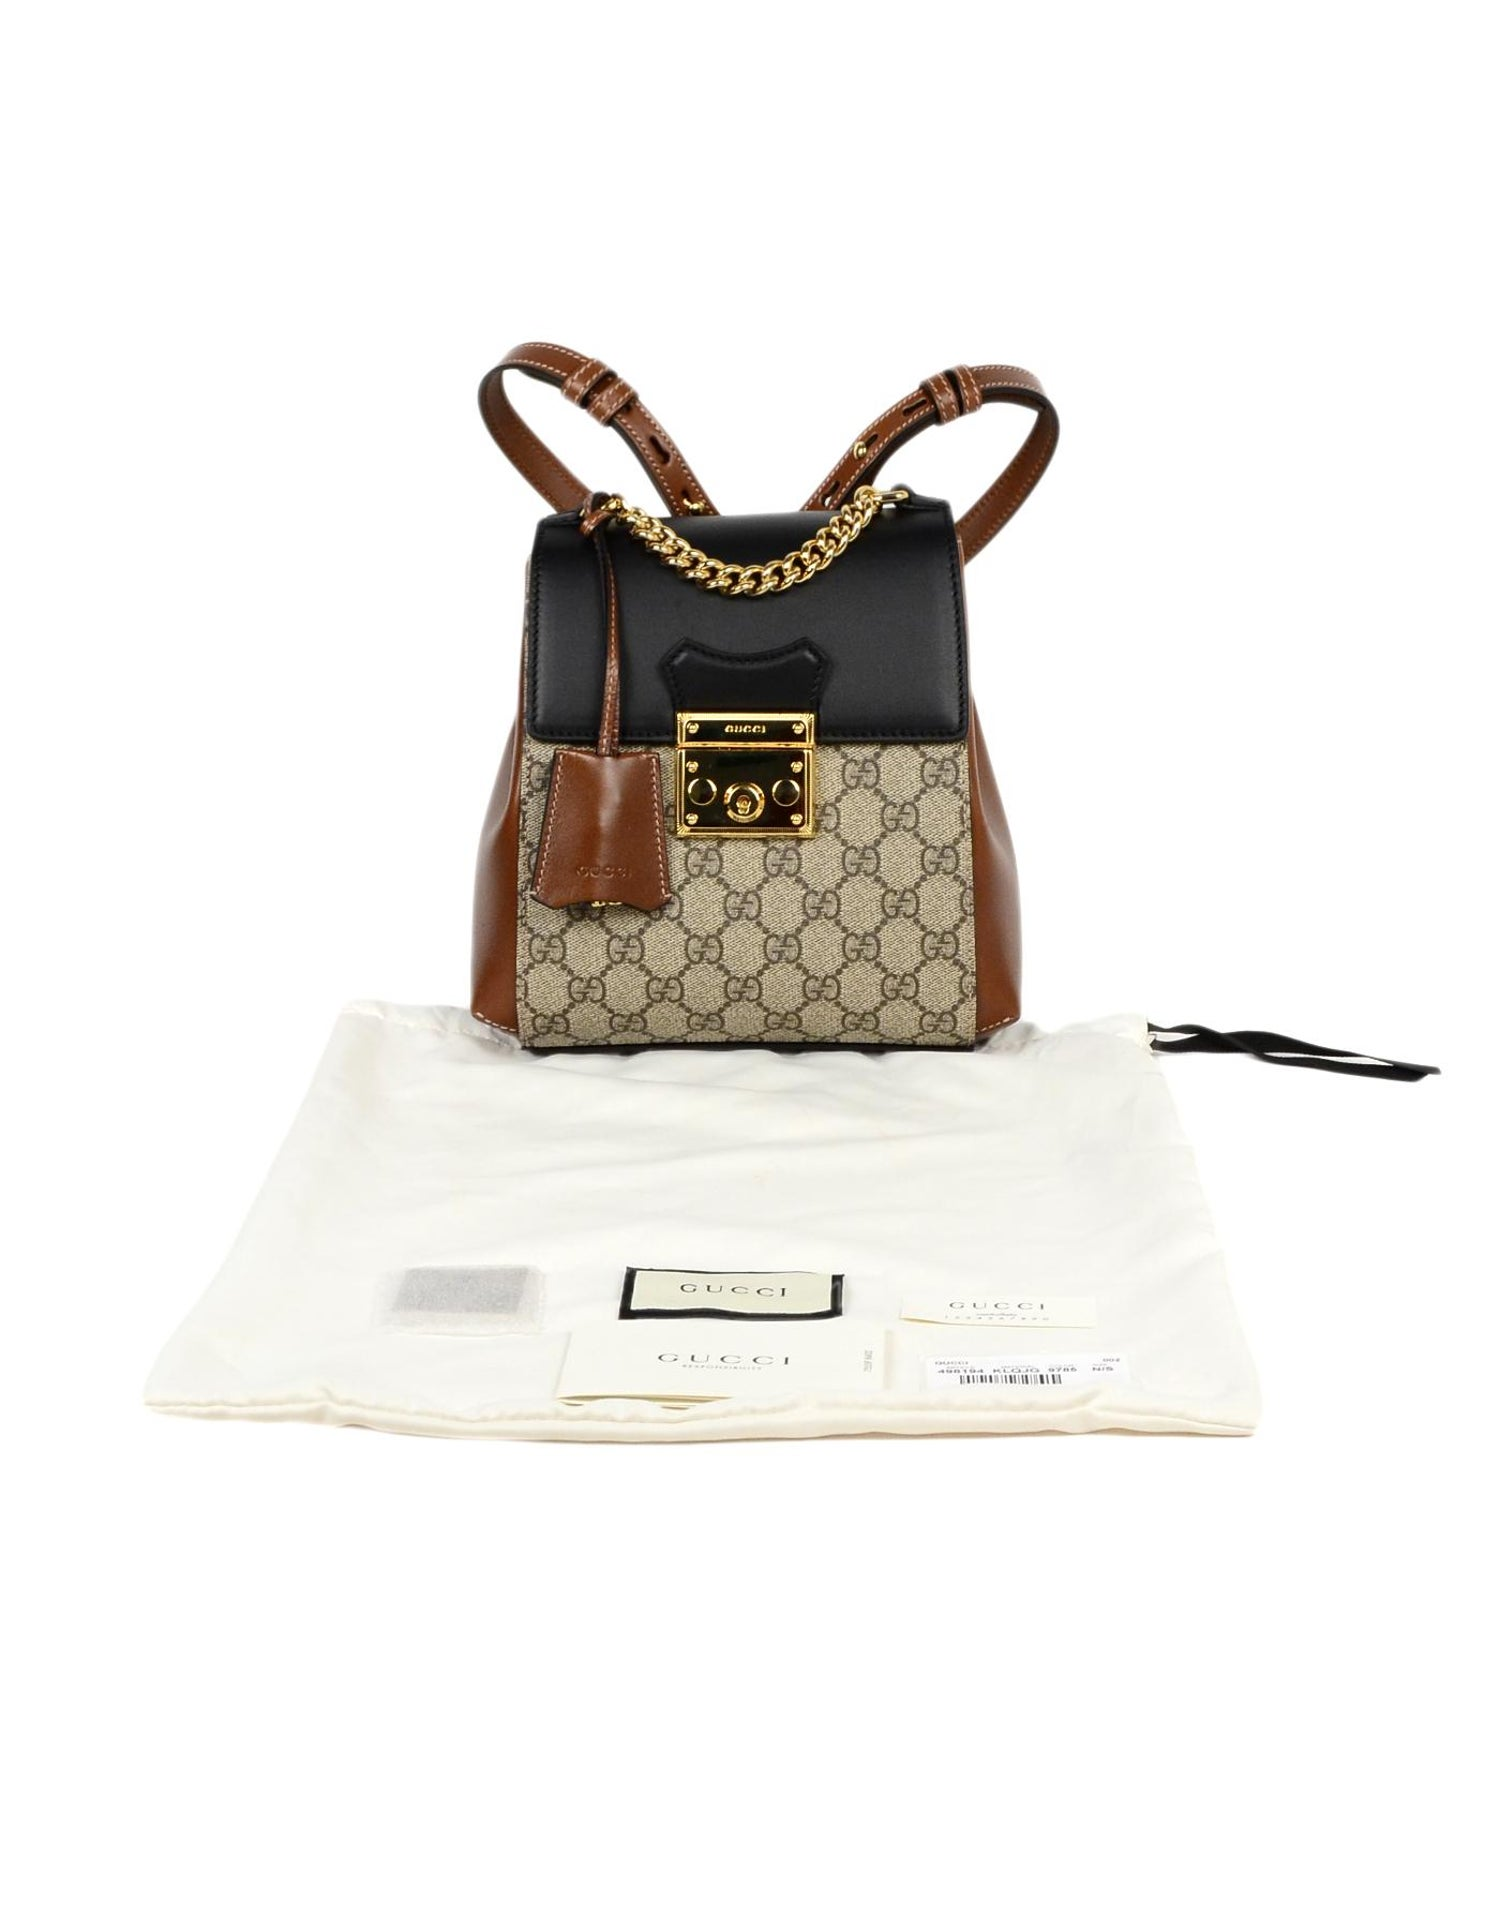 43e2bb62add2 Gucci 2019 Monogram GG Supreme Canvas and Leather Padlock Backpack Bag For  Sale at 1stdibs